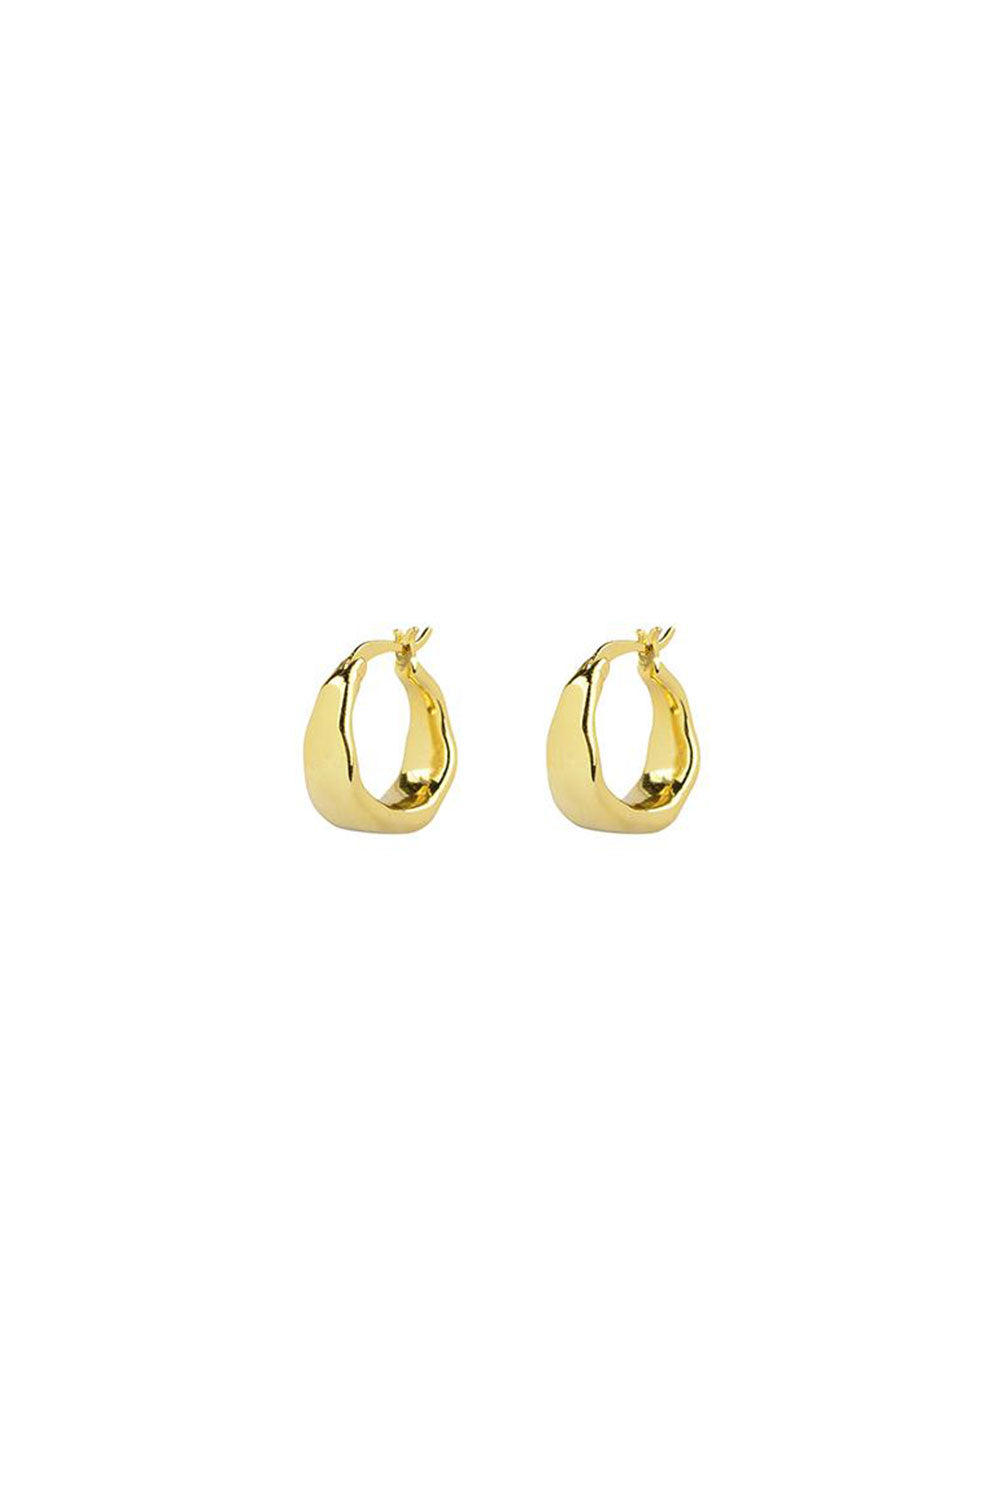 ORGANICA CURVED EARRINGS | GOLD | BRIE LEON NZ | Jewellery NZ | Black Box Boutique Auckland | Womens Fashion NZ